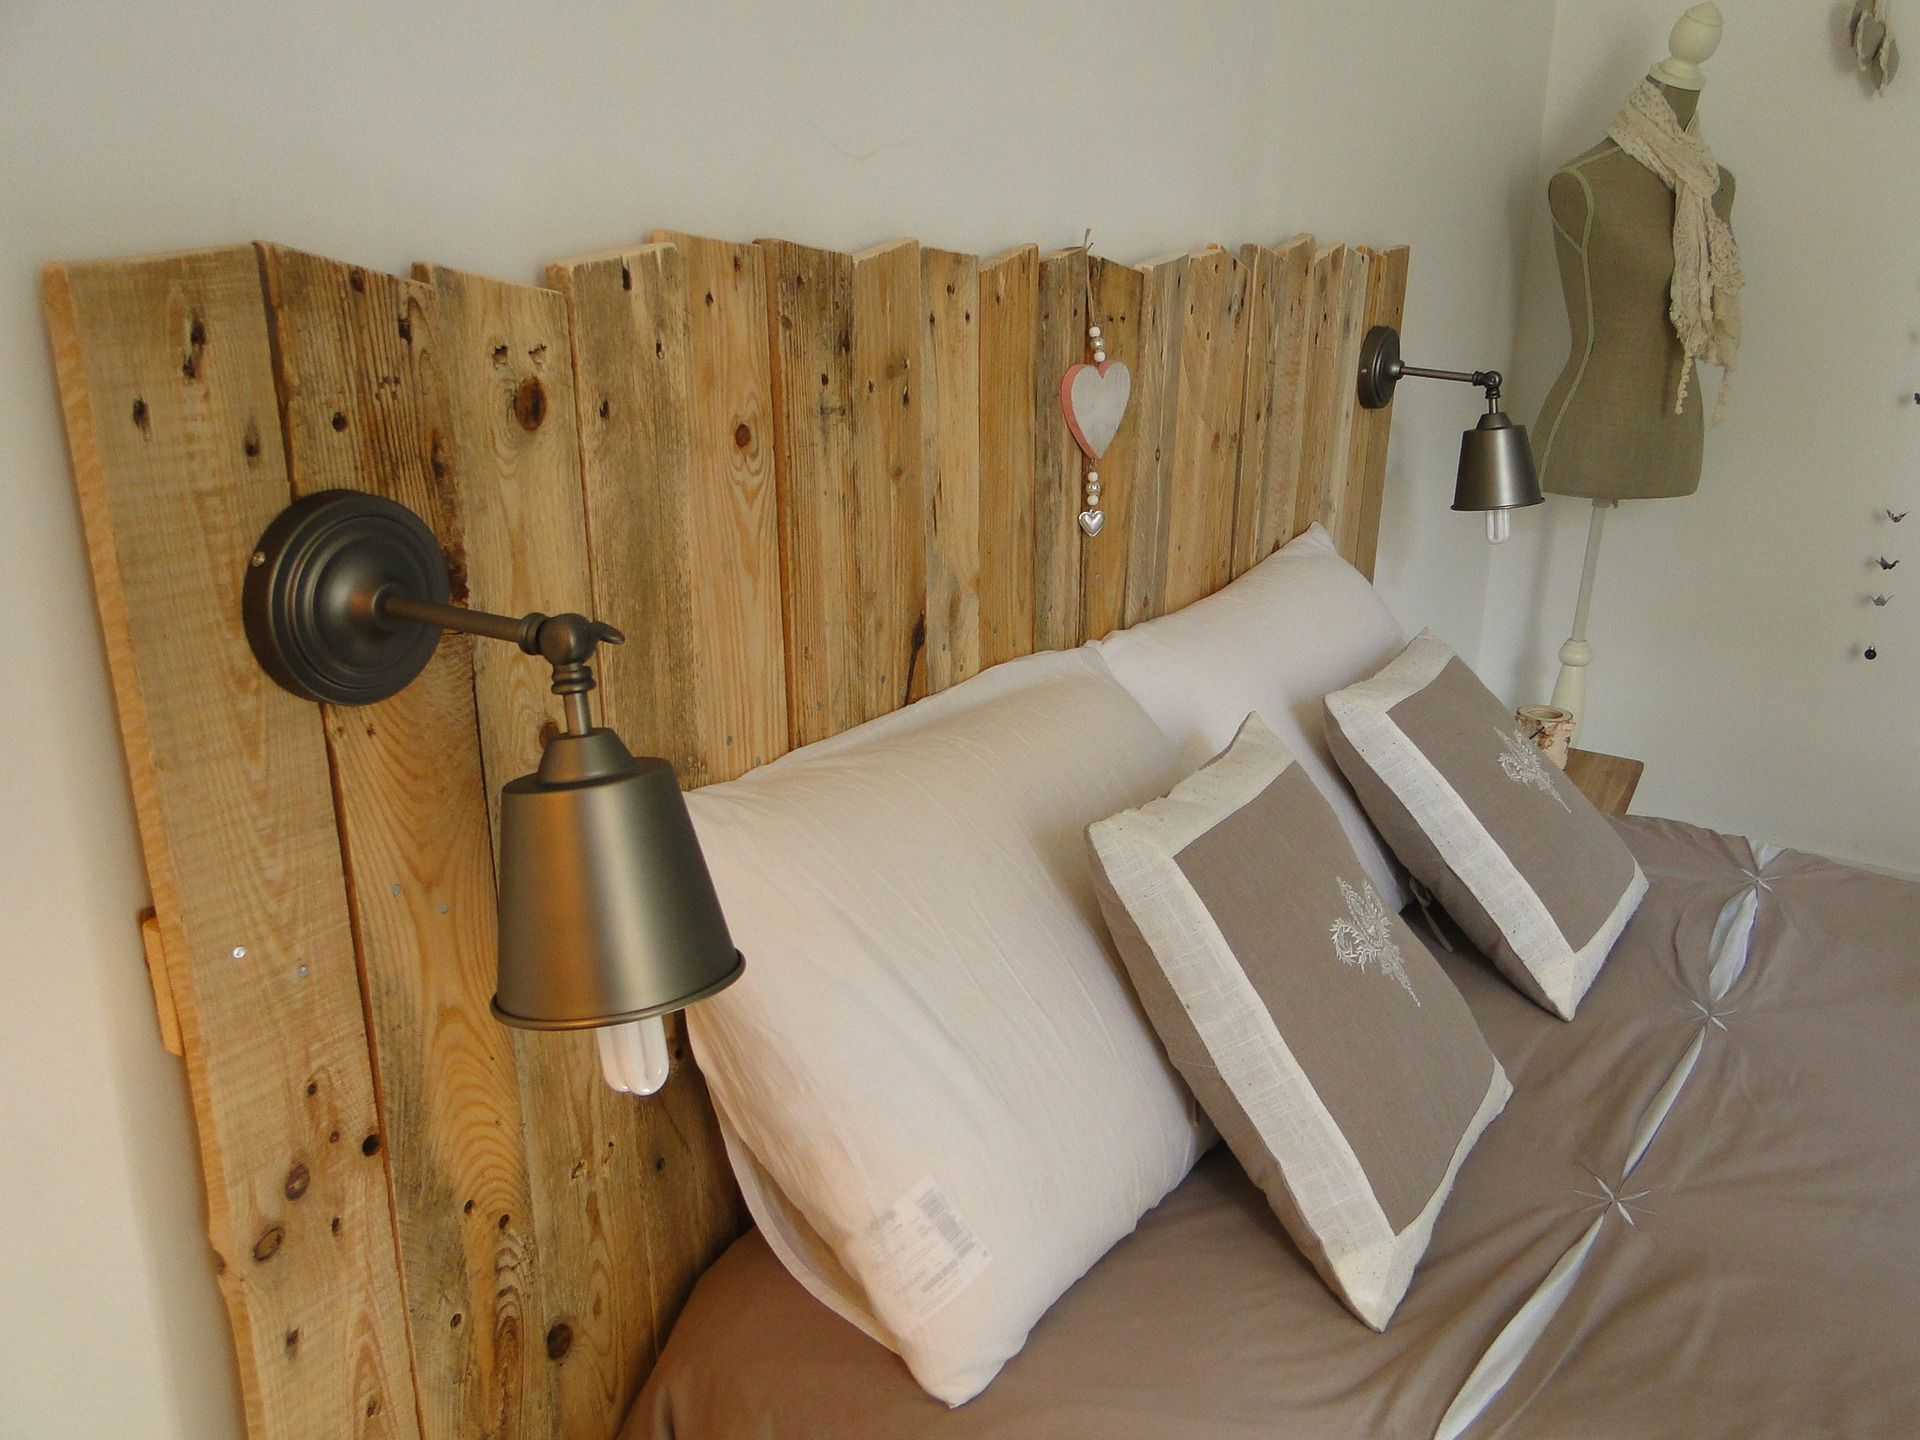 cheap tte de lit en bois avec luminaires meubles et rangements par with lampe accrocher au lit. Black Bedroom Furniture Sets. Home Design Ideas